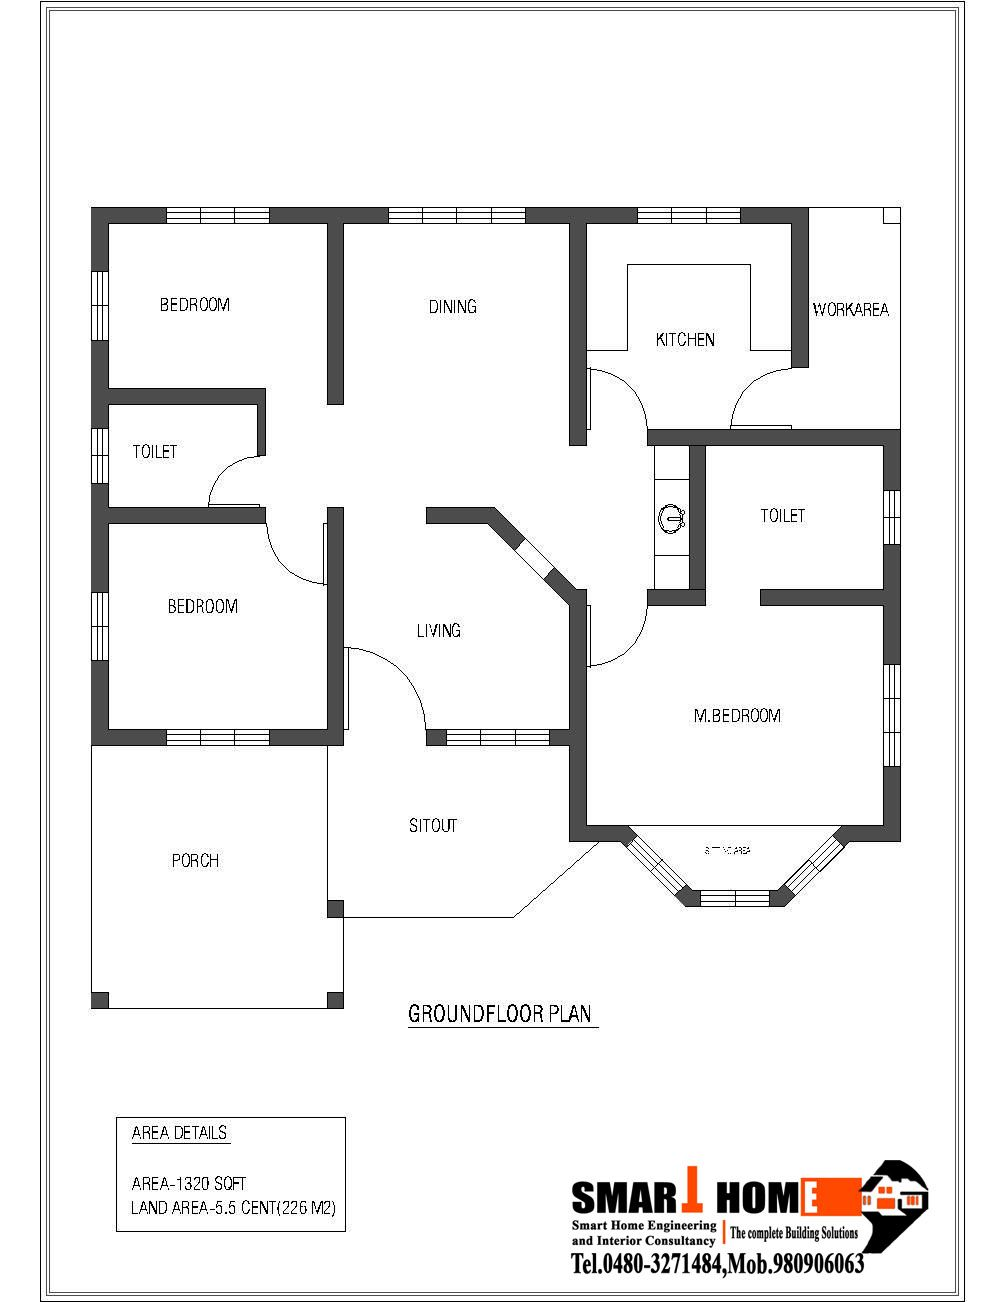 1320 sqft kerala style 3 bedroom house plan from smart for Kerala house plan images